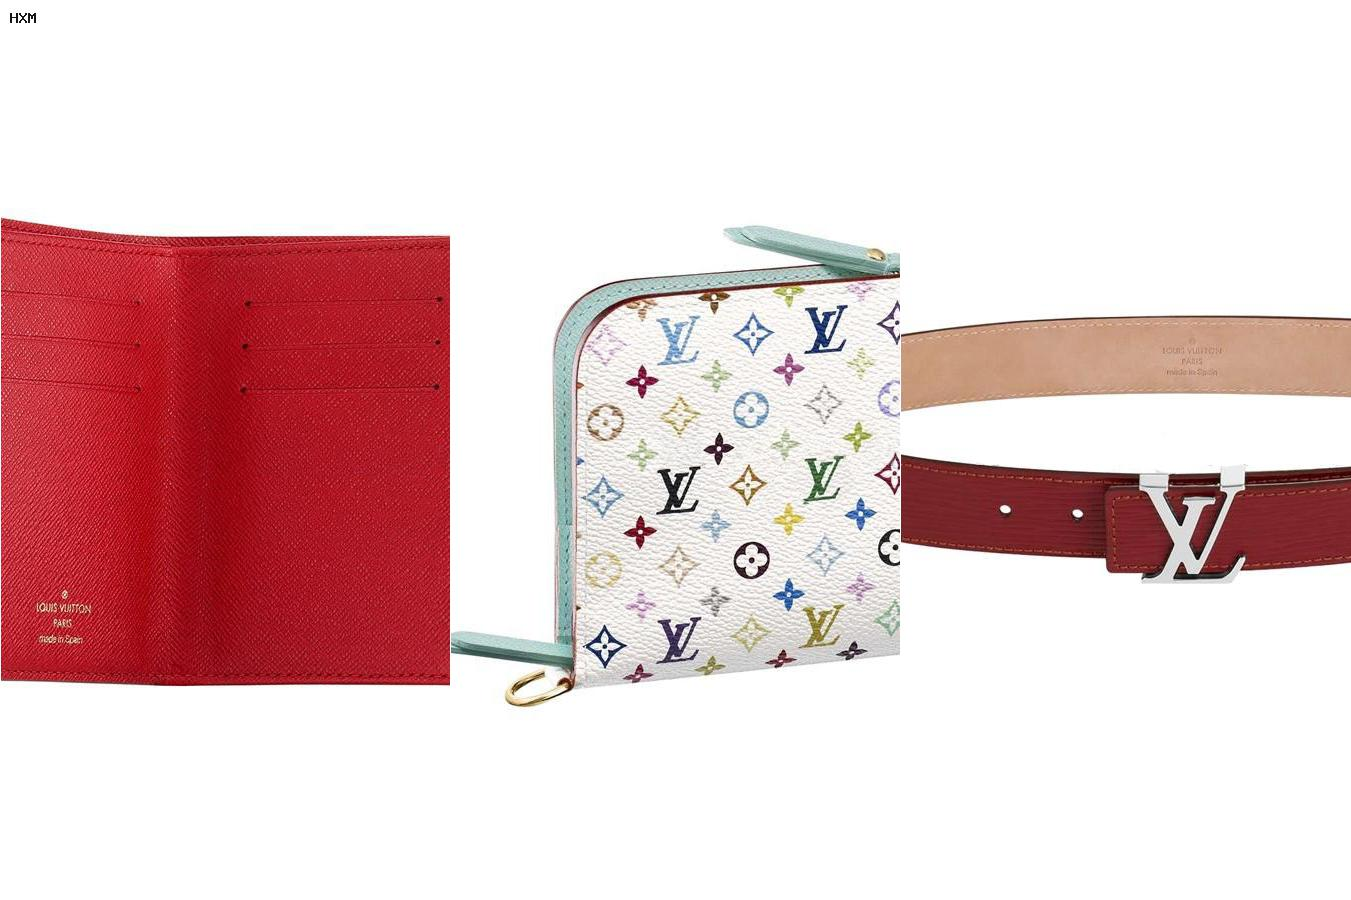 monedero louis vuitton corazon precio